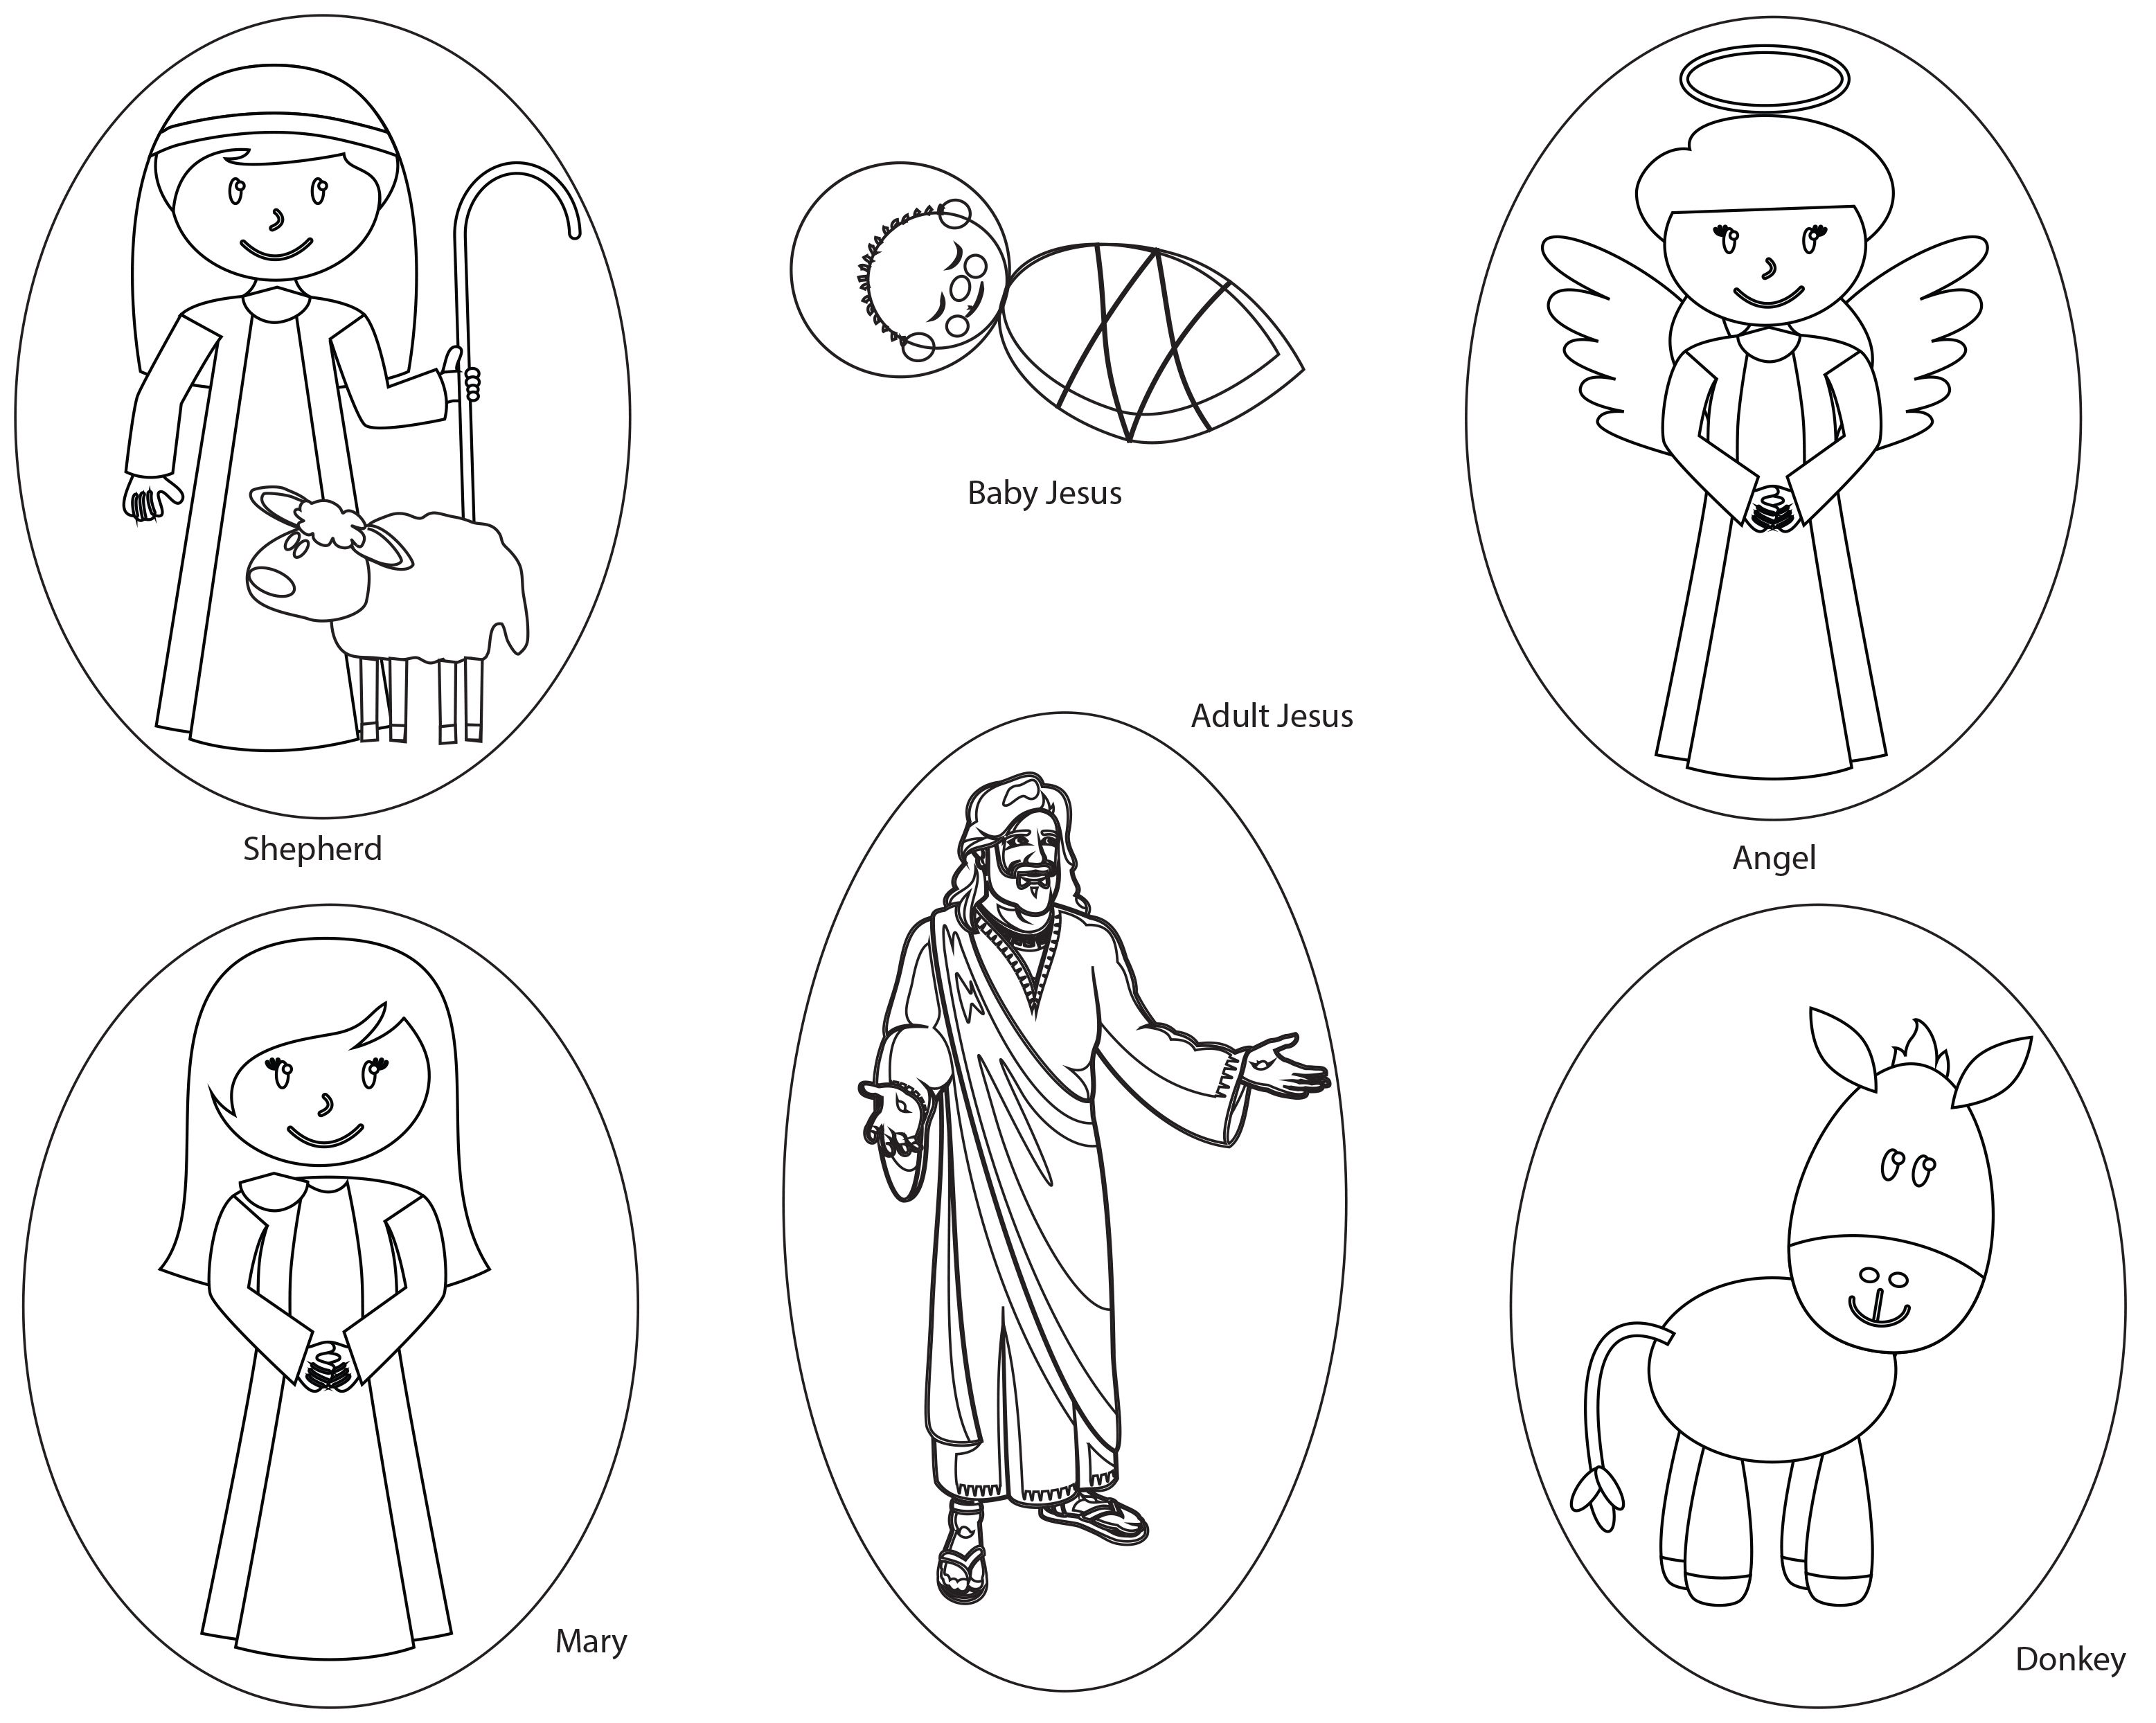 Printable puppets for preschoolers to use for Kiddie Tales